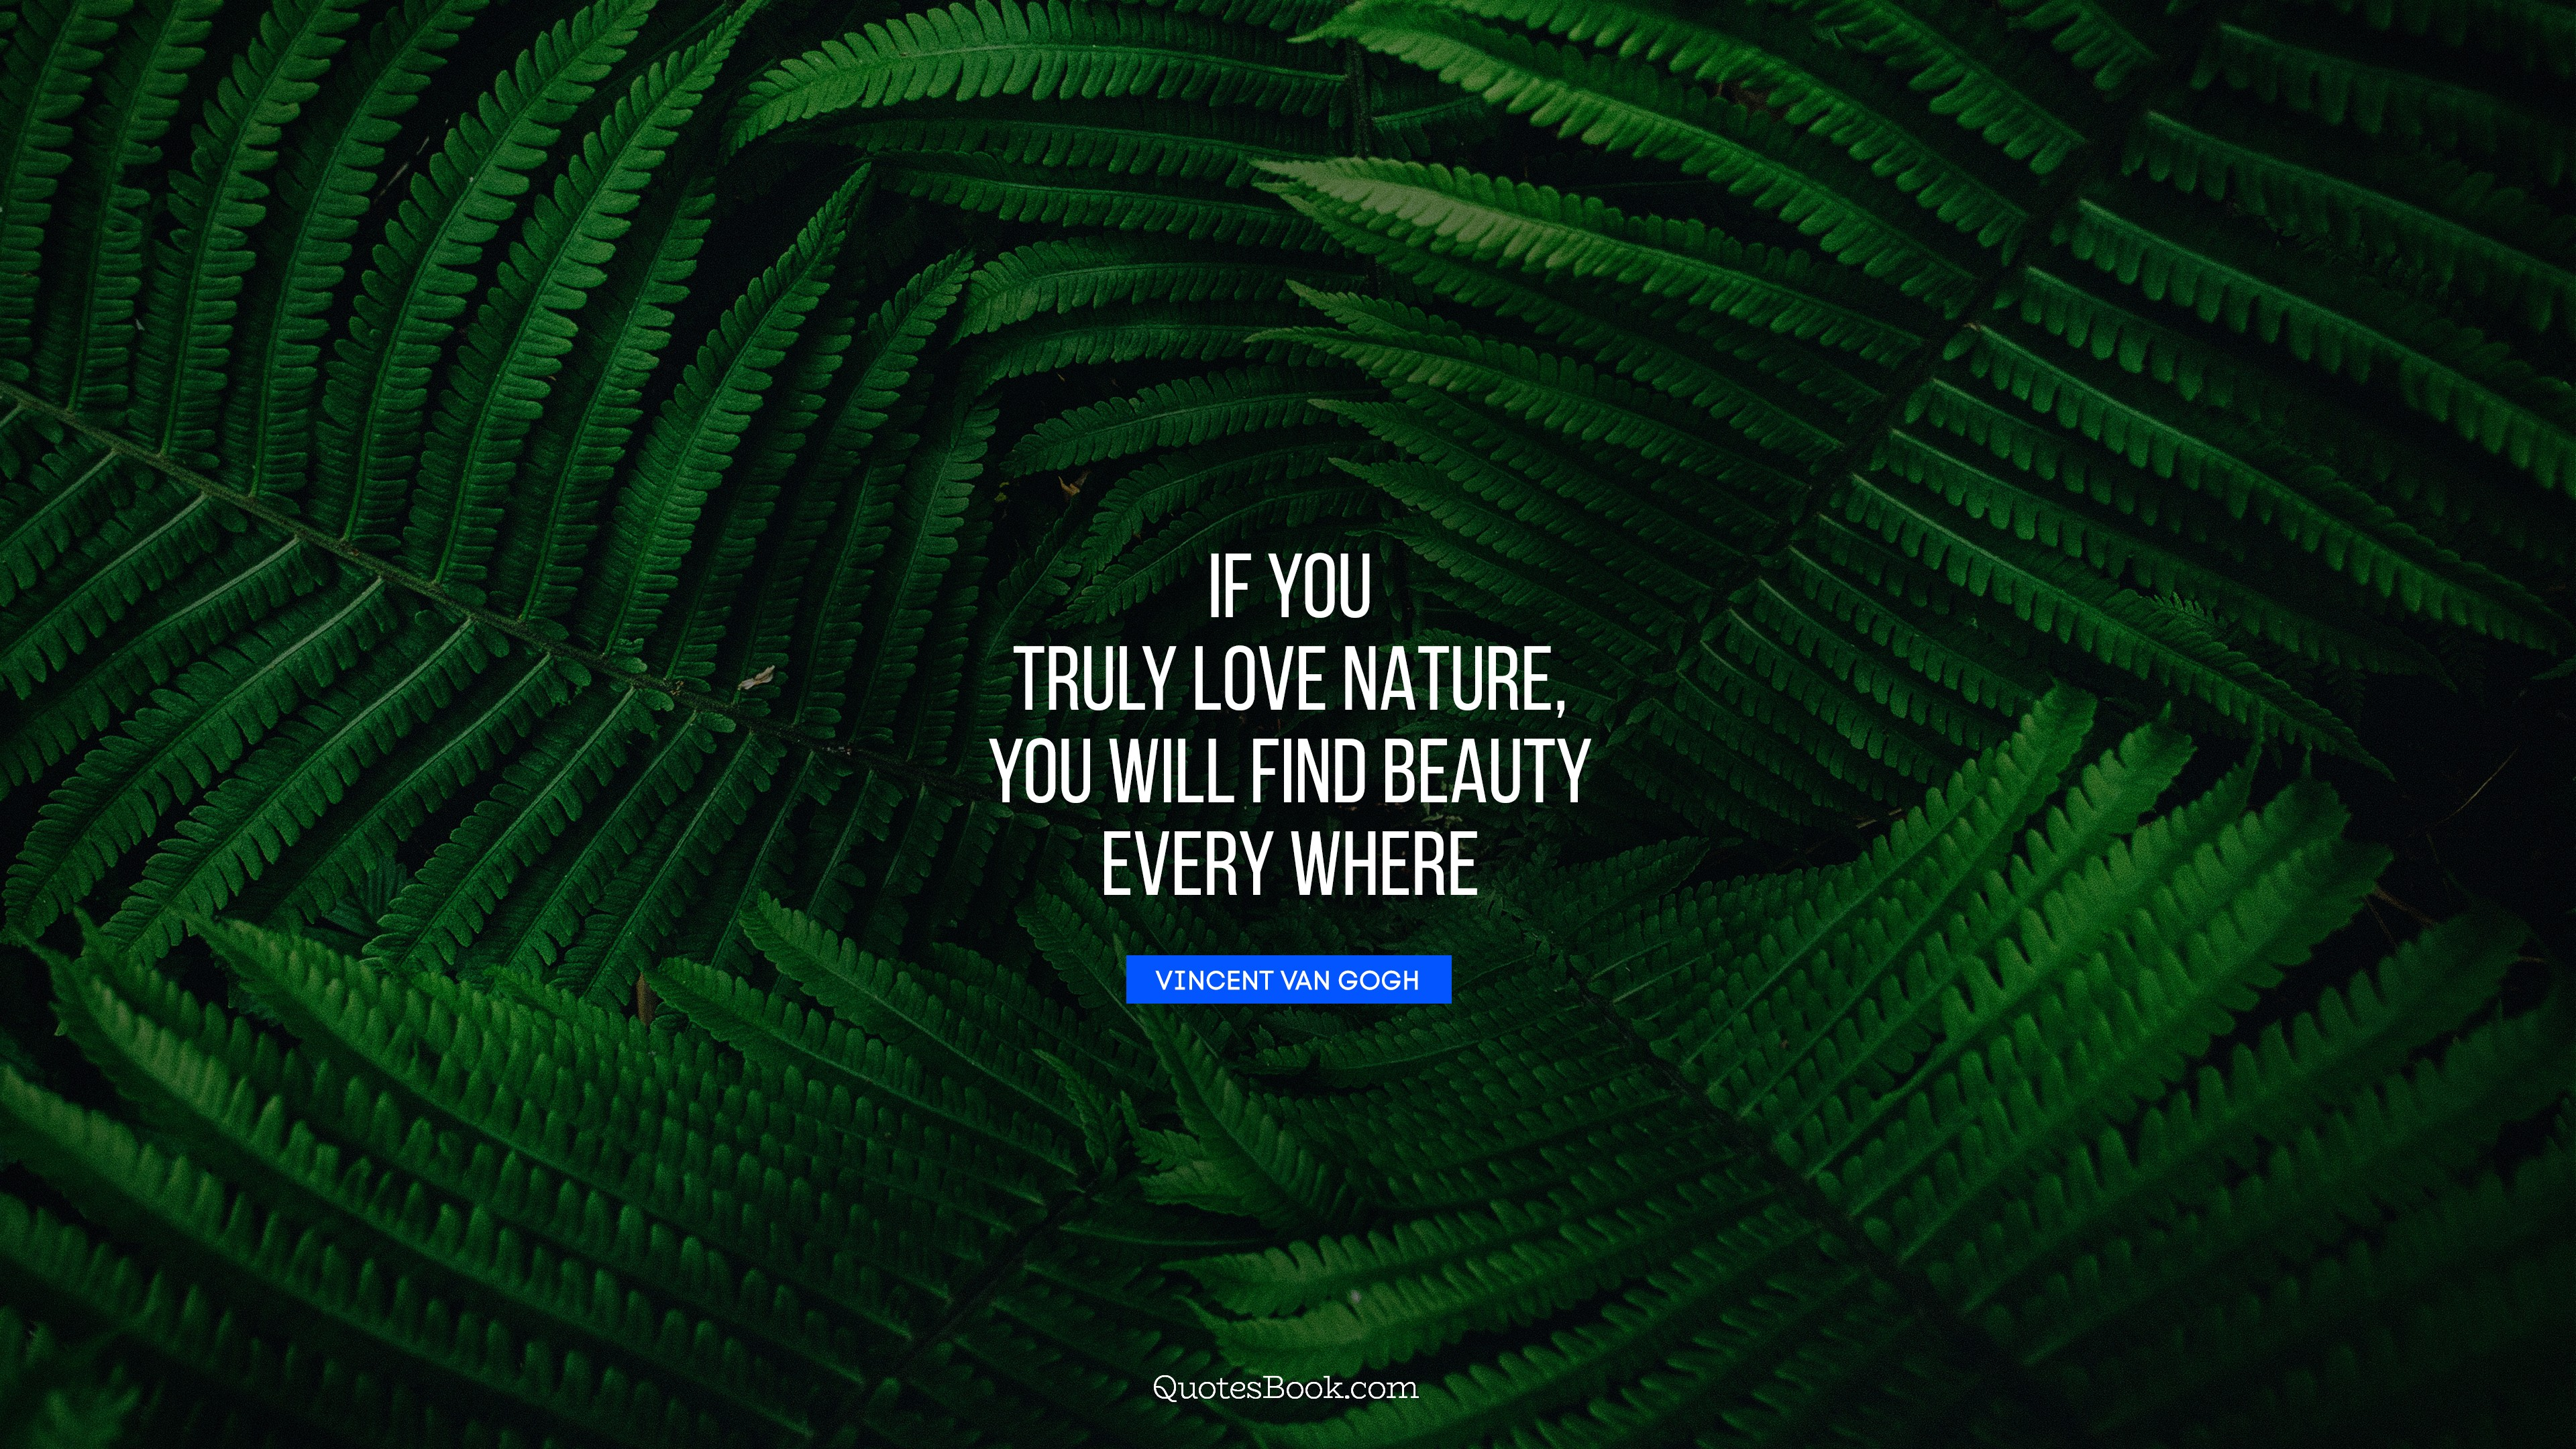 If You Truly Love Nature You Will Find Beauty Every Where Quote By Vincent Van Gogh Quotesbook